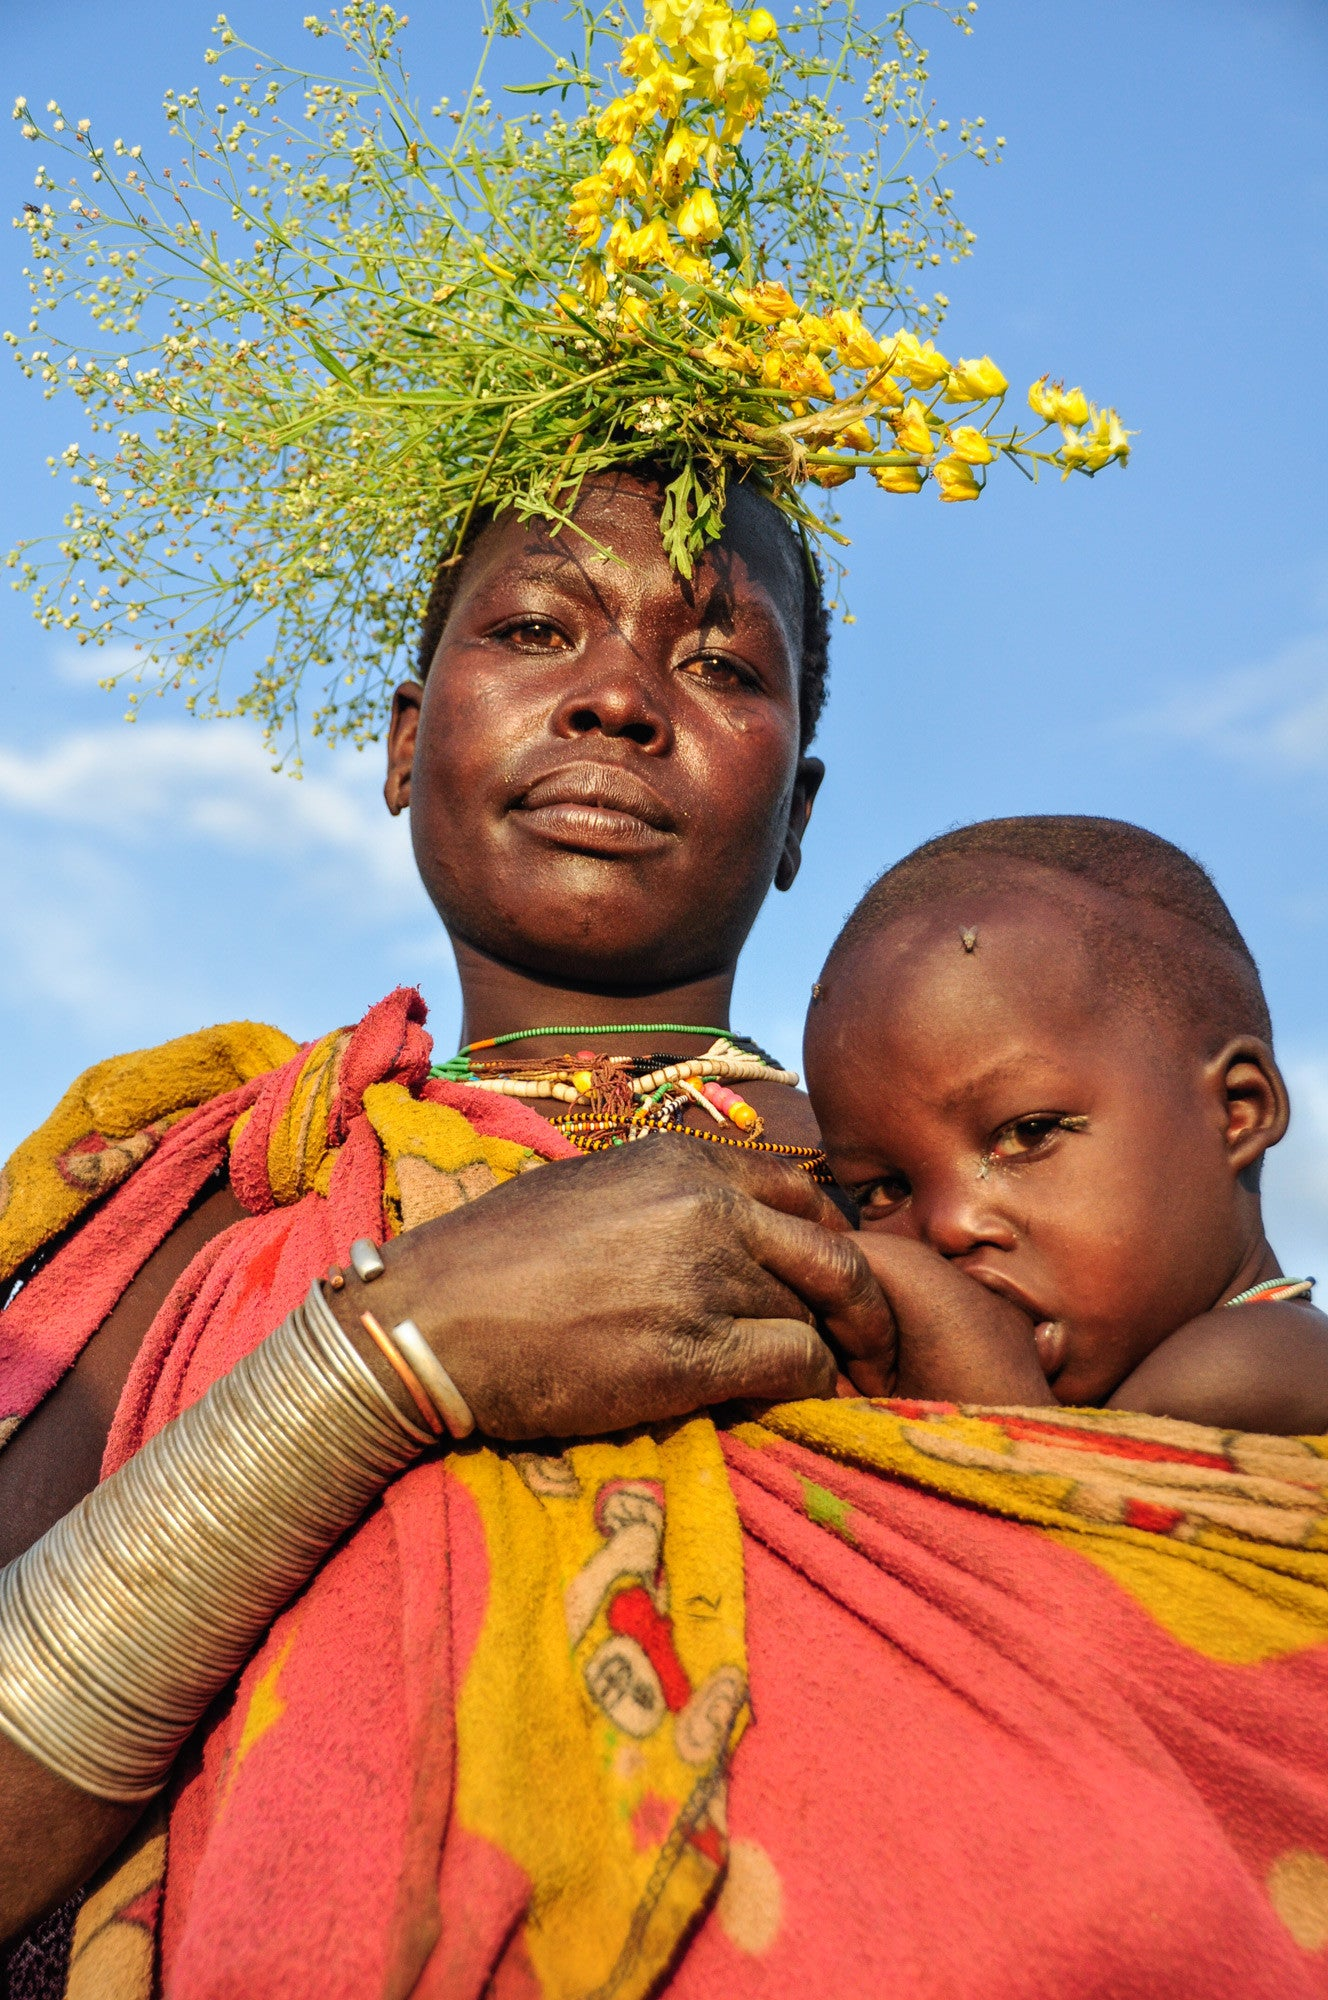 Mother with Yellow Flowers - Omo Valley - Surma Tribe